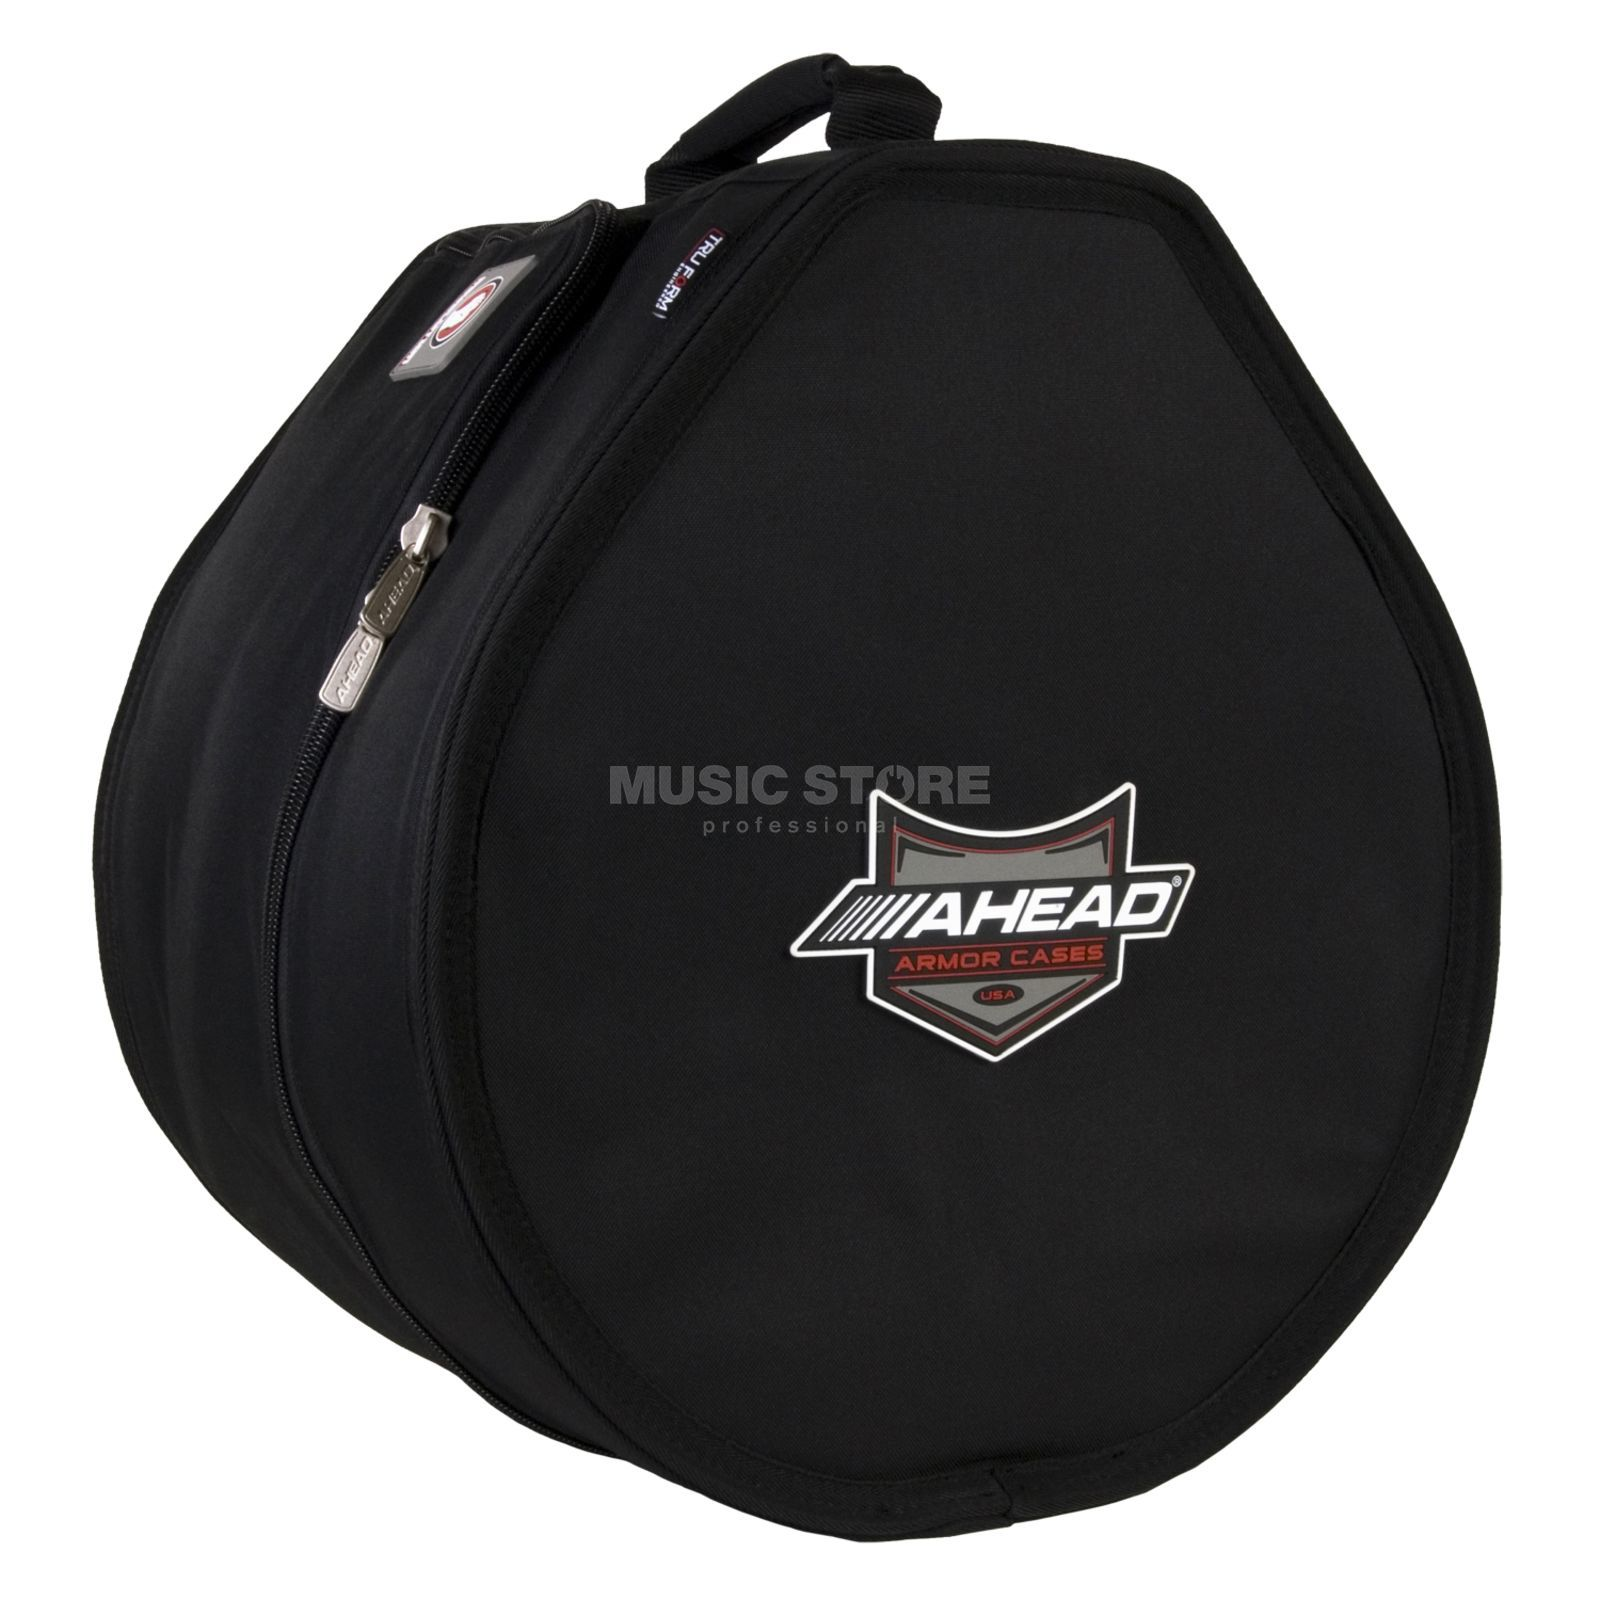 "Ahead Armor Cases Tom Bag 12""x9""  Product Image"